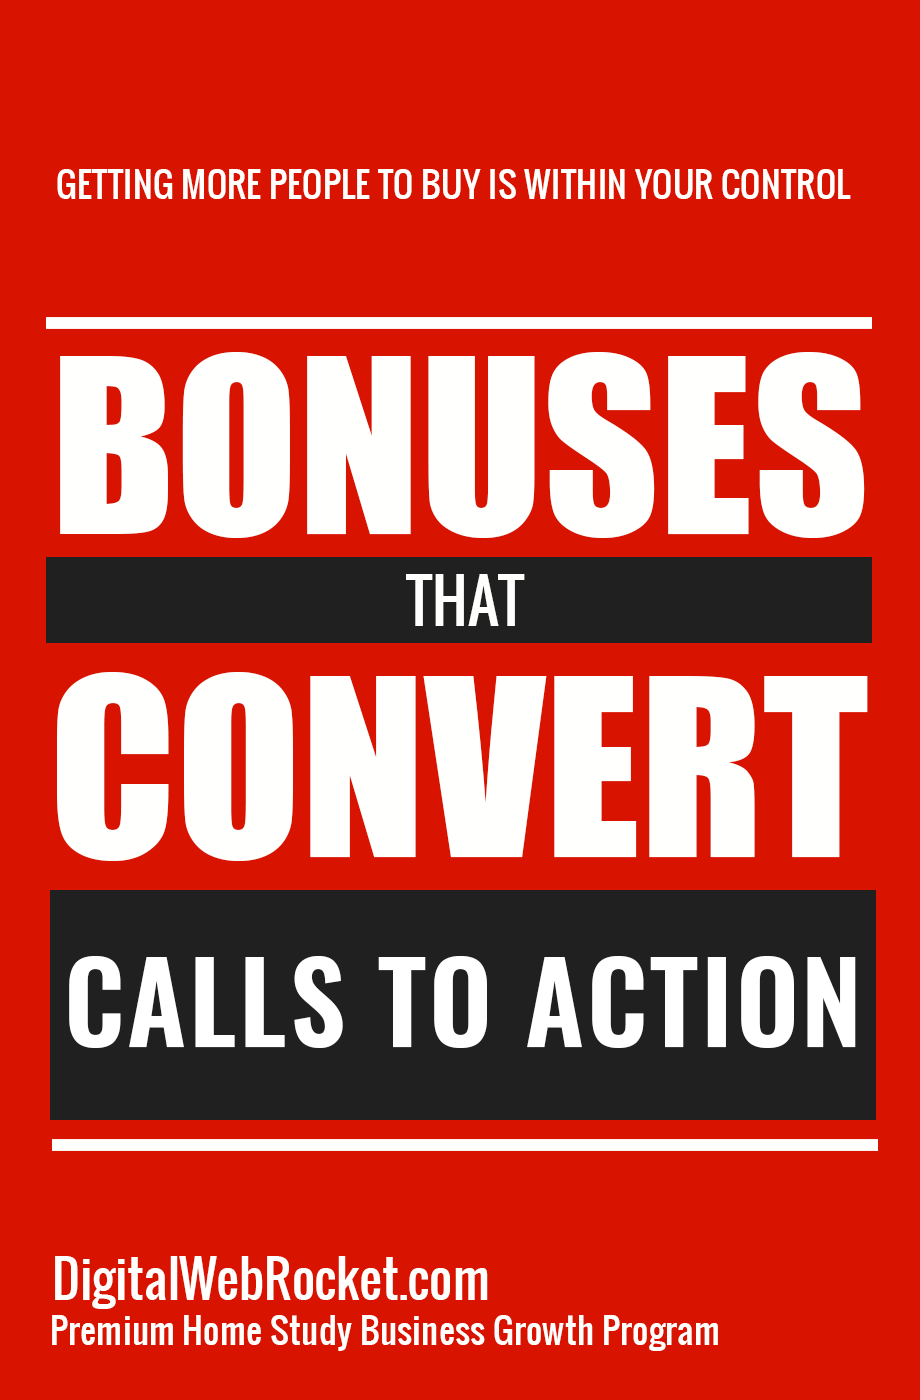 10 Copy and Paste Calls-To-Action For Promoting Your Bonuses